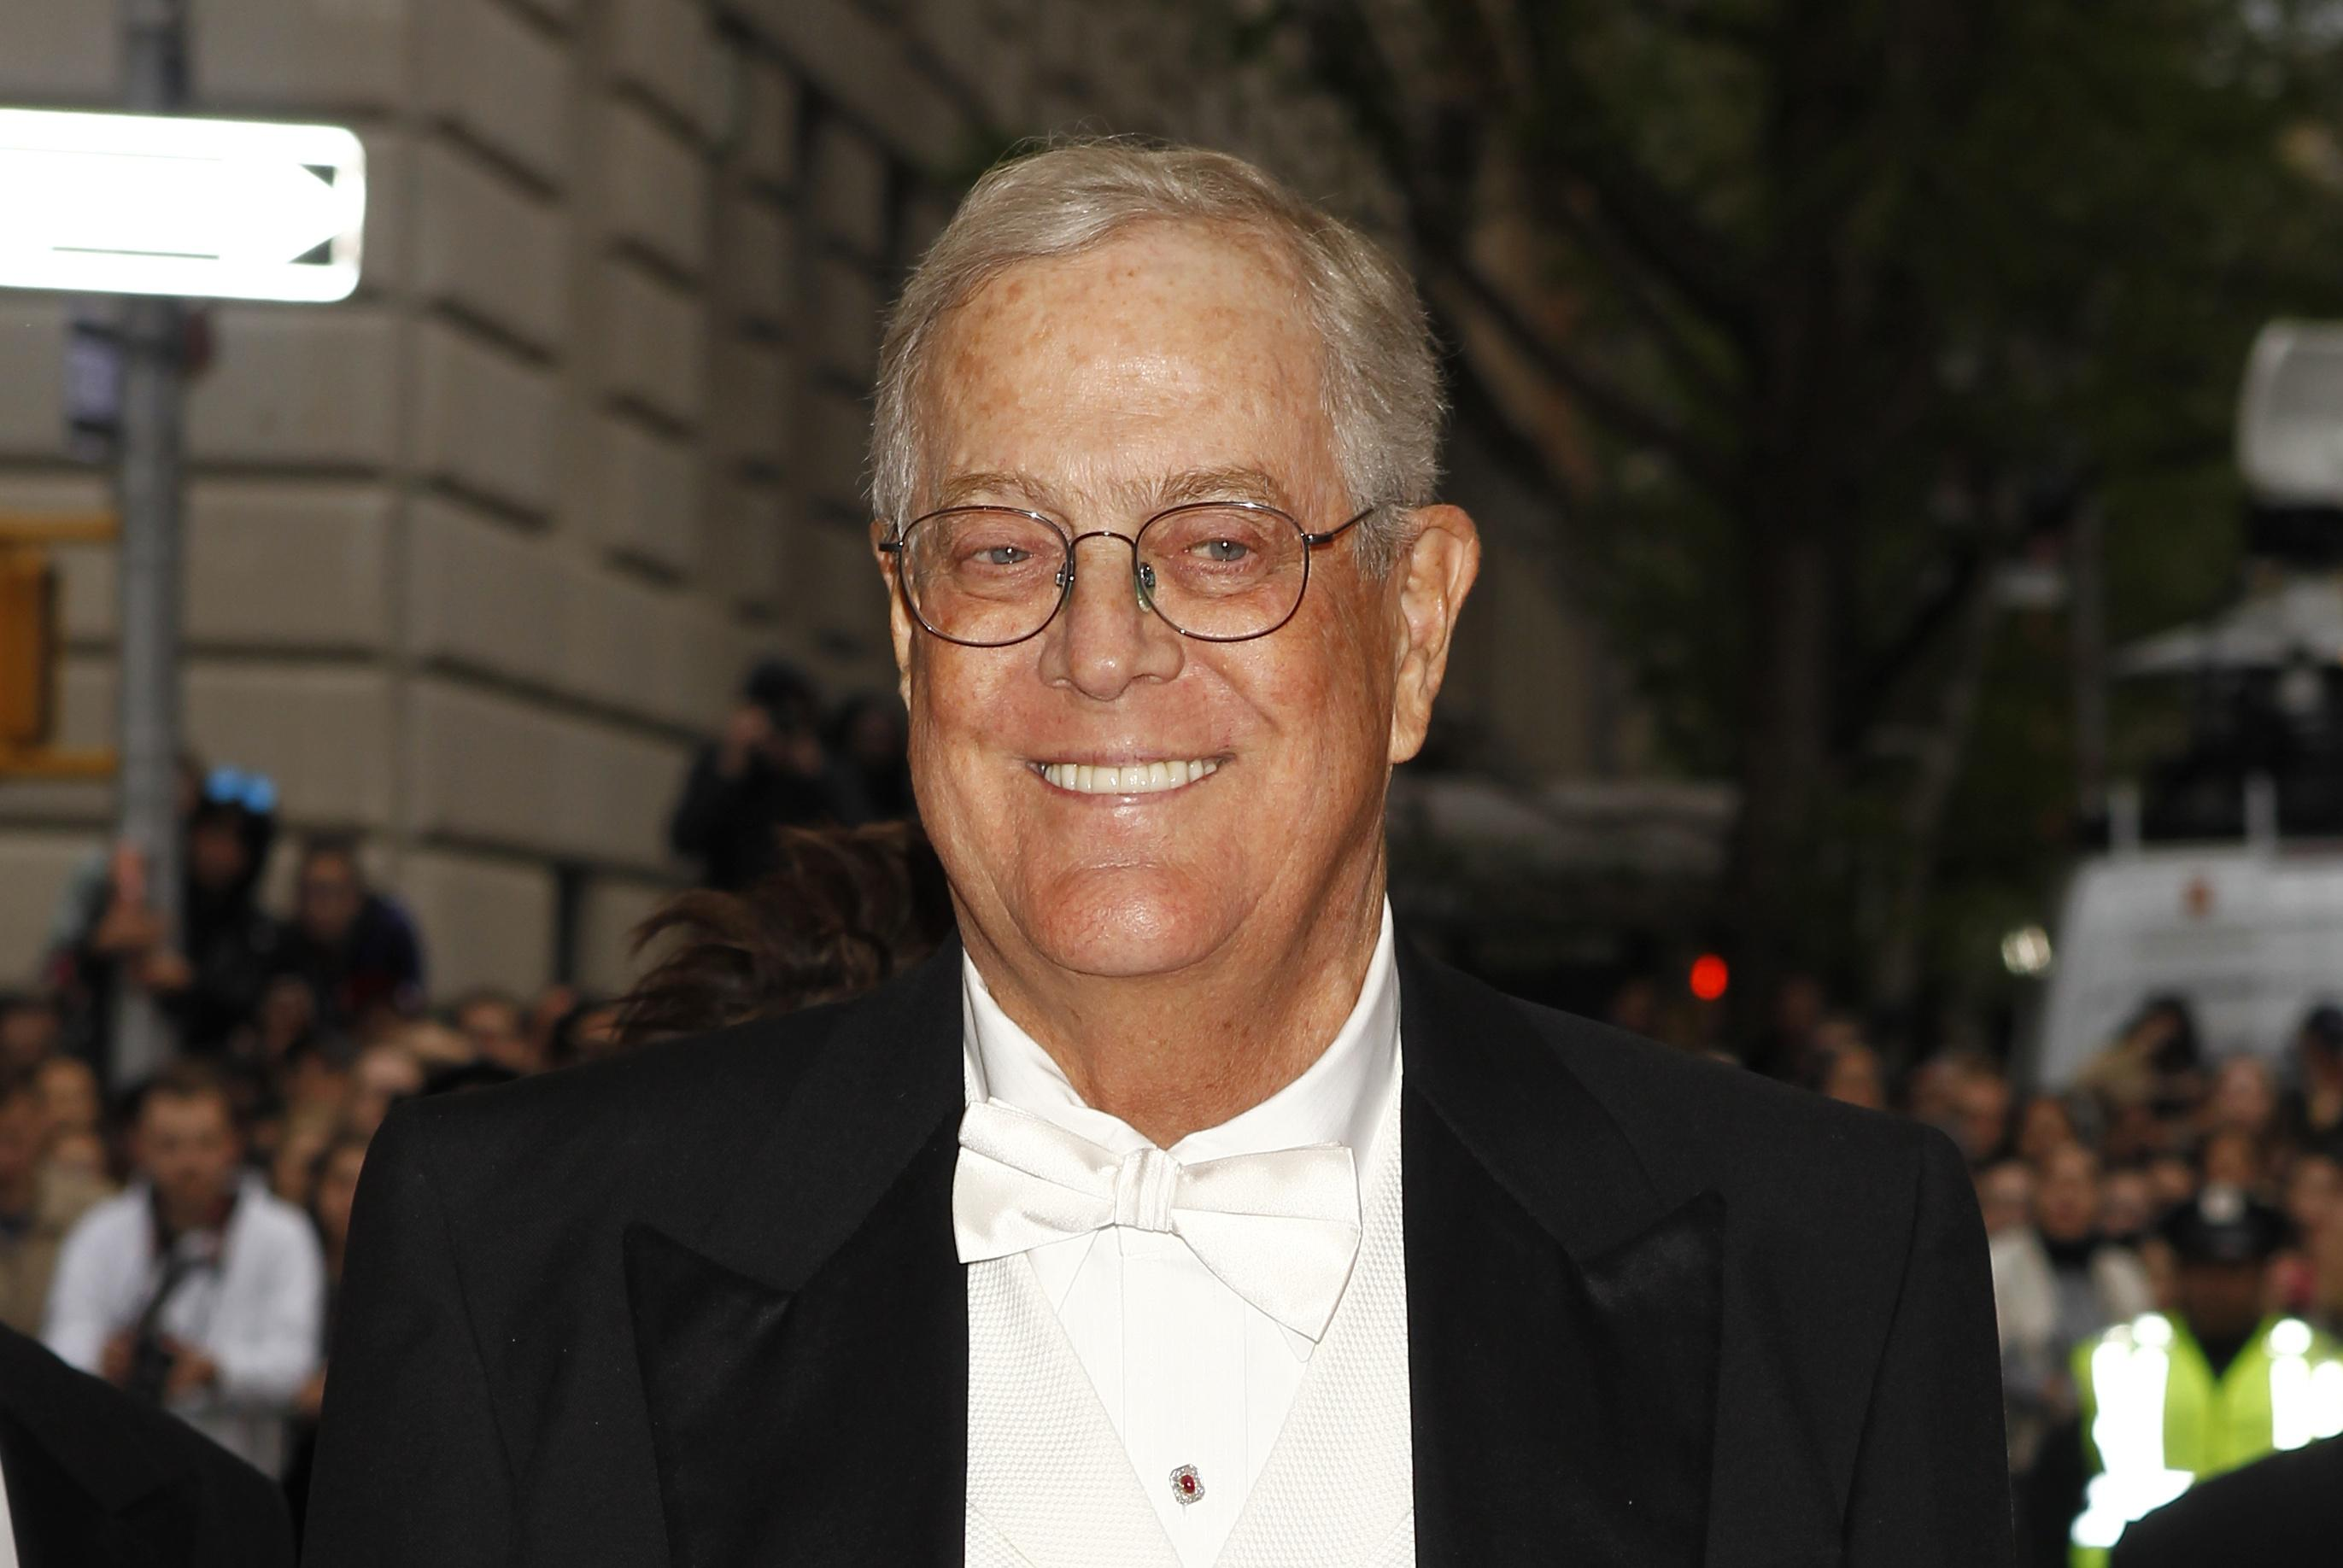 Billionaire Republican David Koch to Retire from Business AND Political Orgs